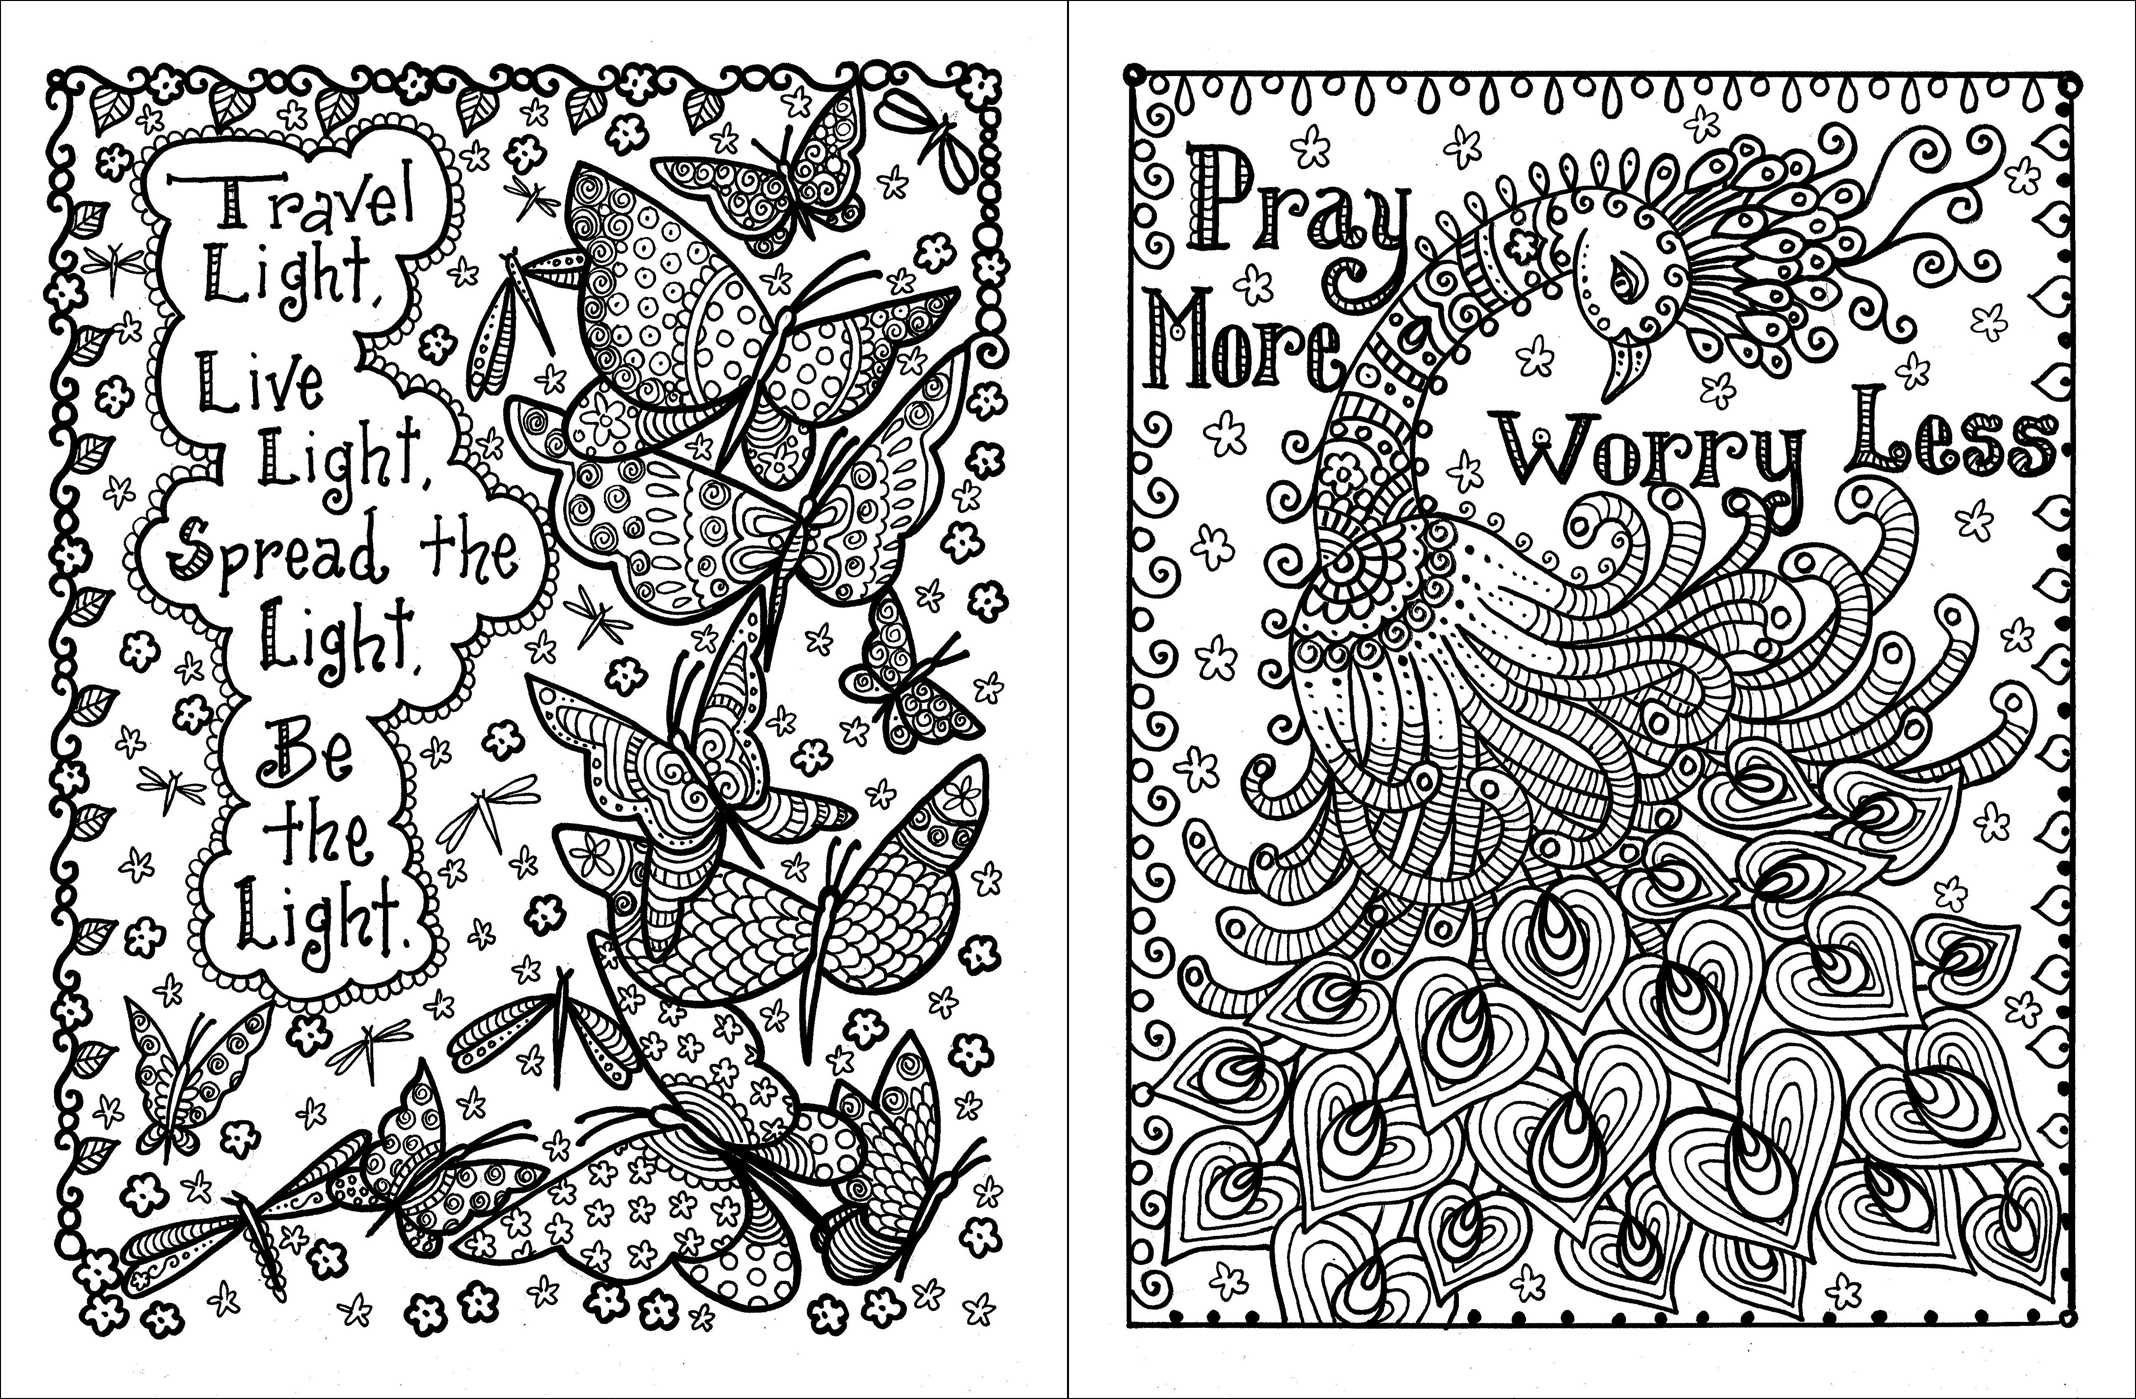 Free Printable Inspirational Coloring Pages Save Free Printable - Free Printable Inspirational Coloring Pages